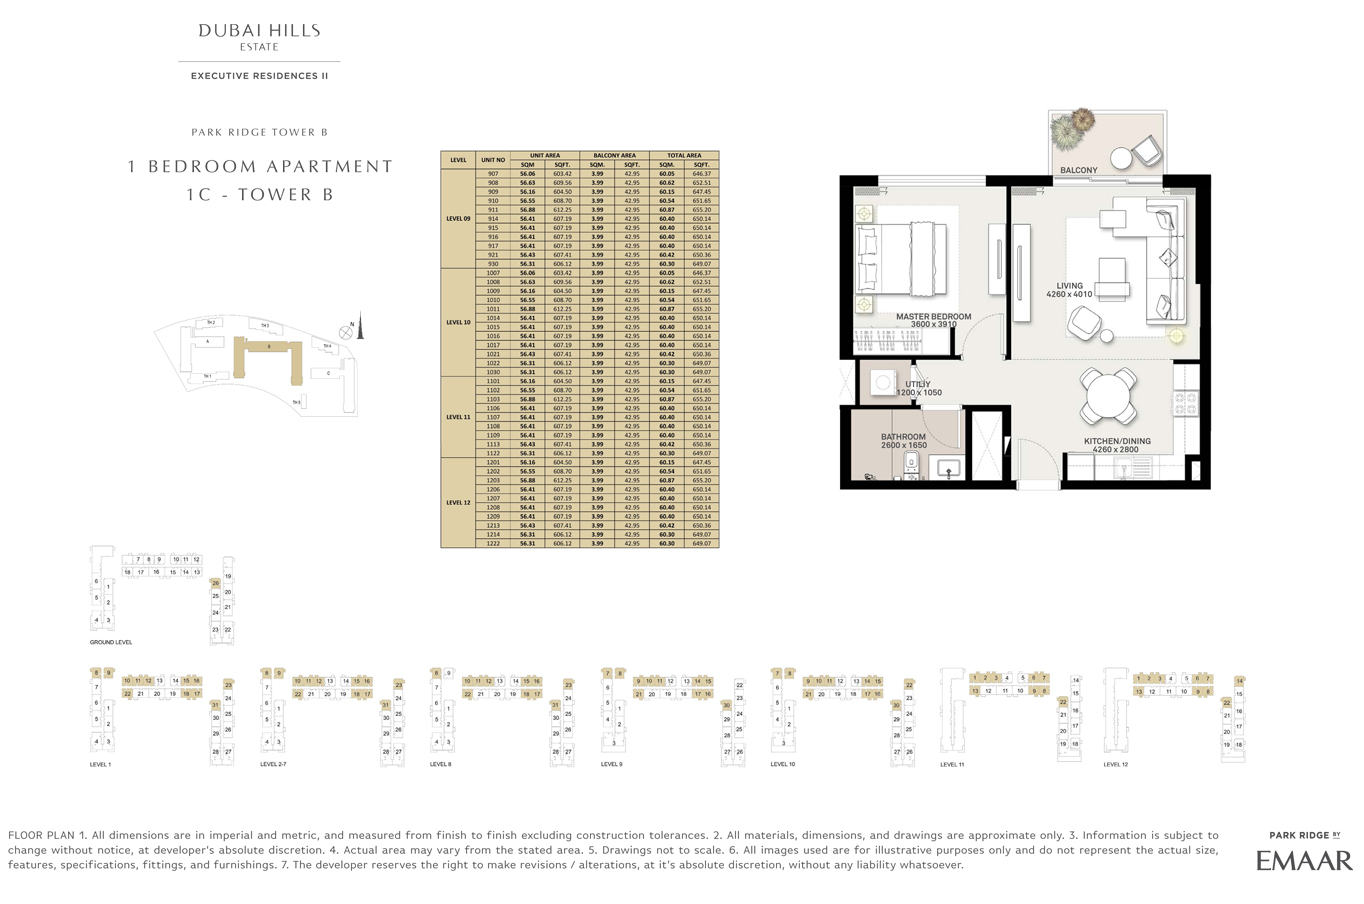 1 Bedroom Type 1C, Tower B, Size 647 Sq Ft